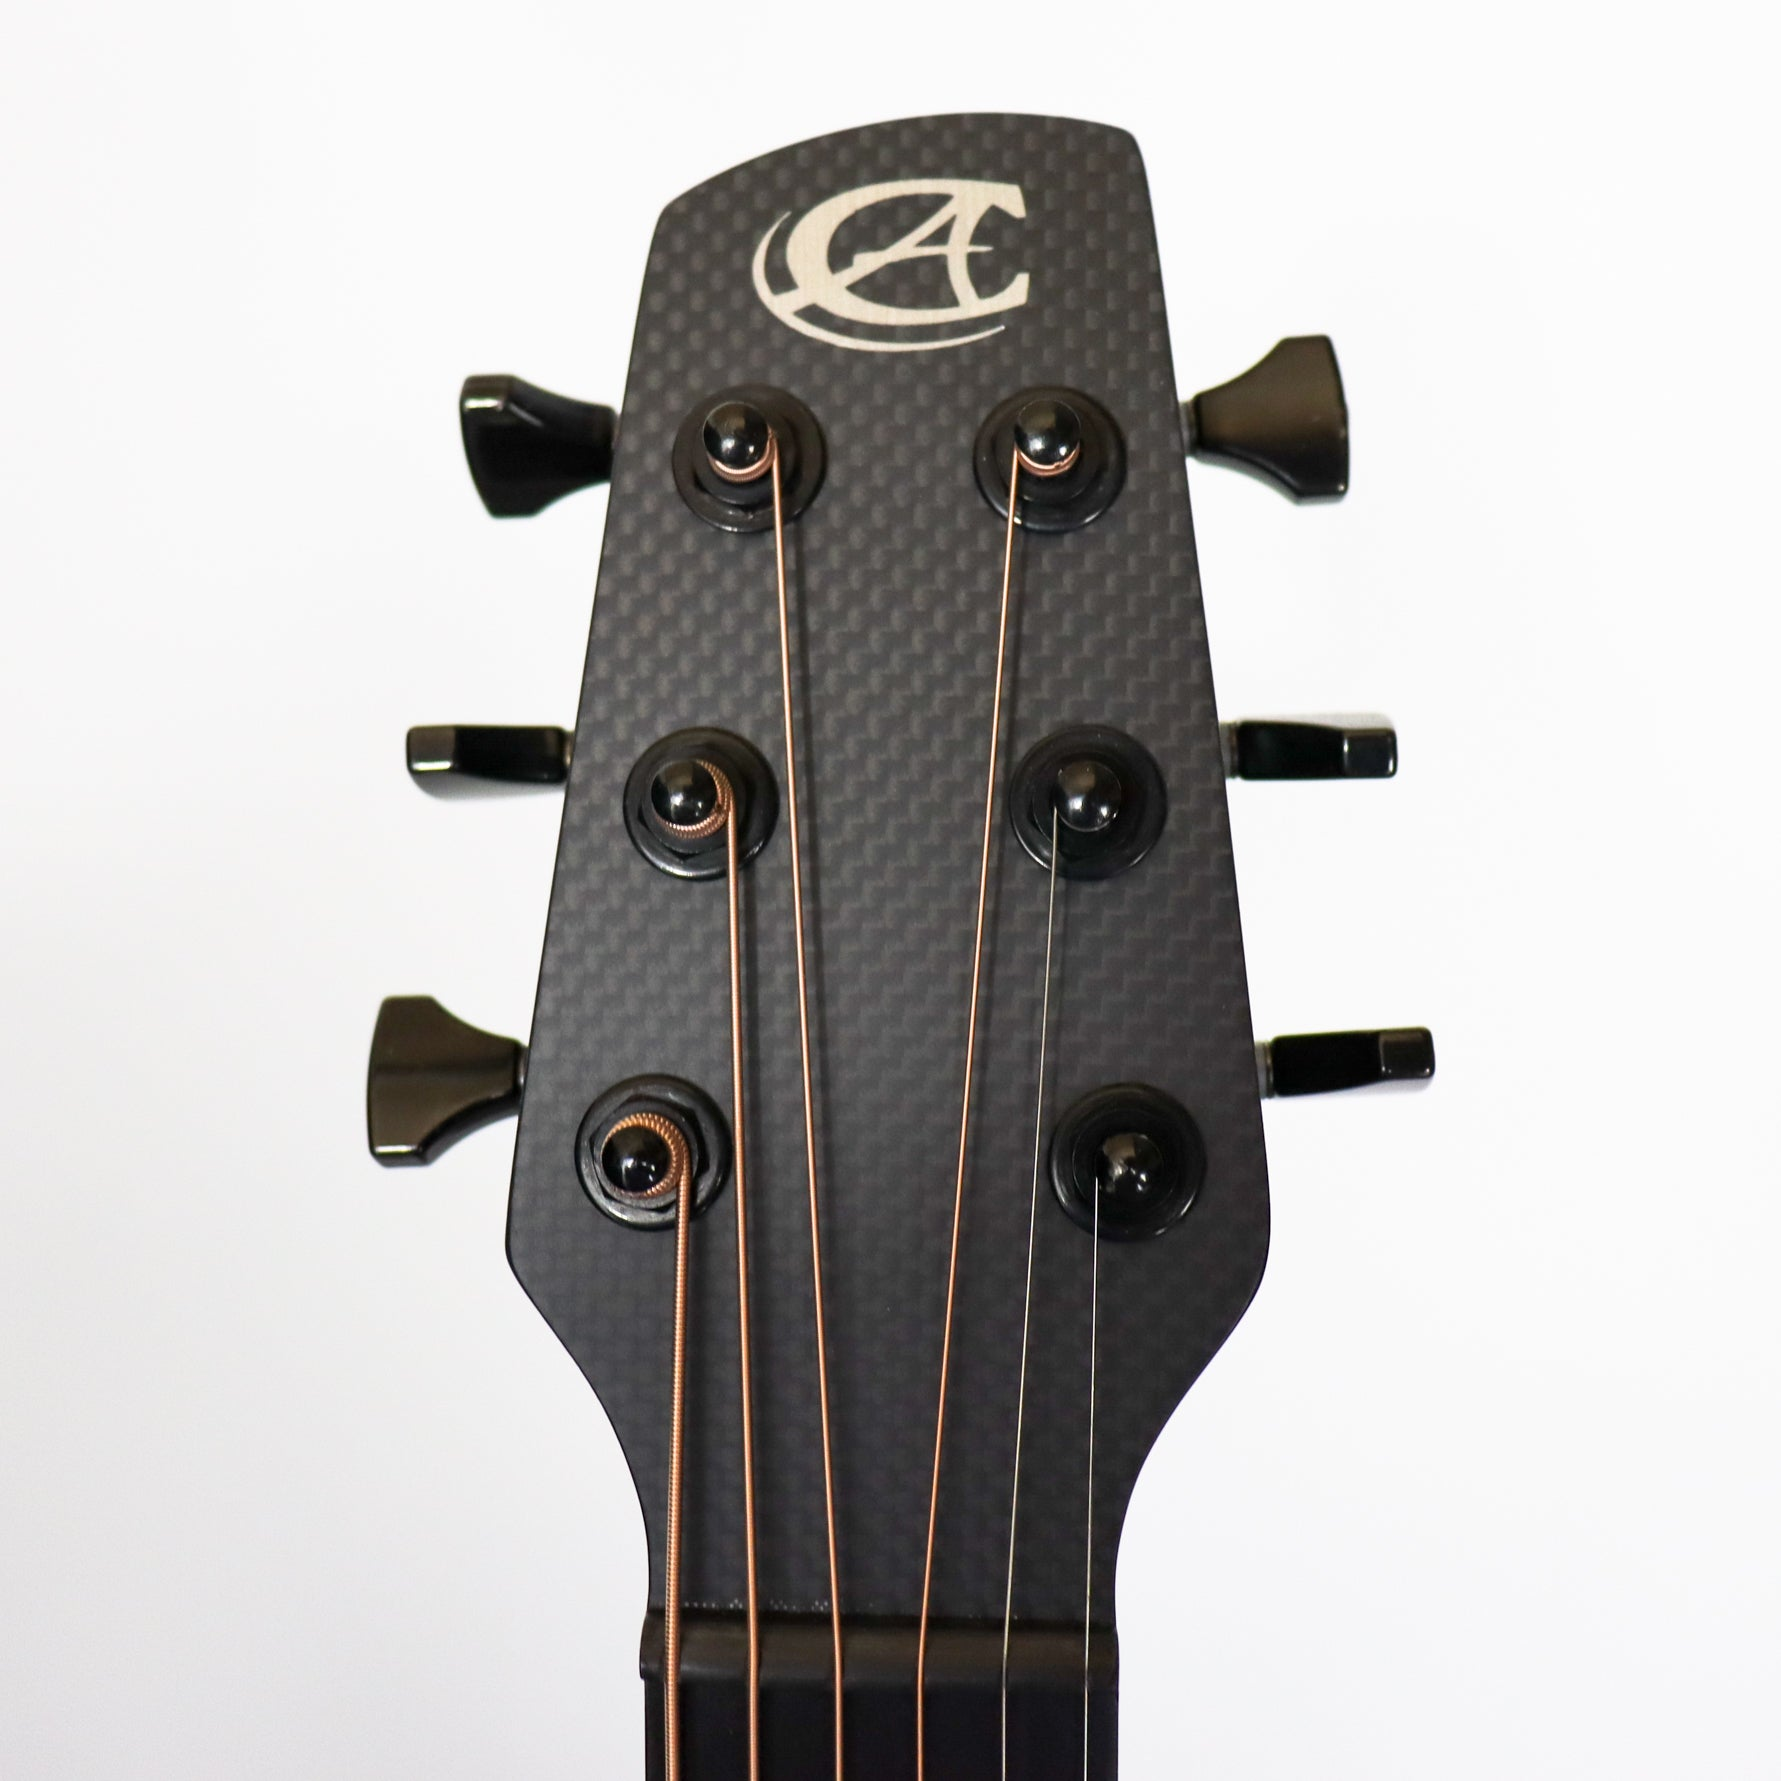 Composite Guitars Cargo ELE Satin Black Raw Carbon Fiber Top